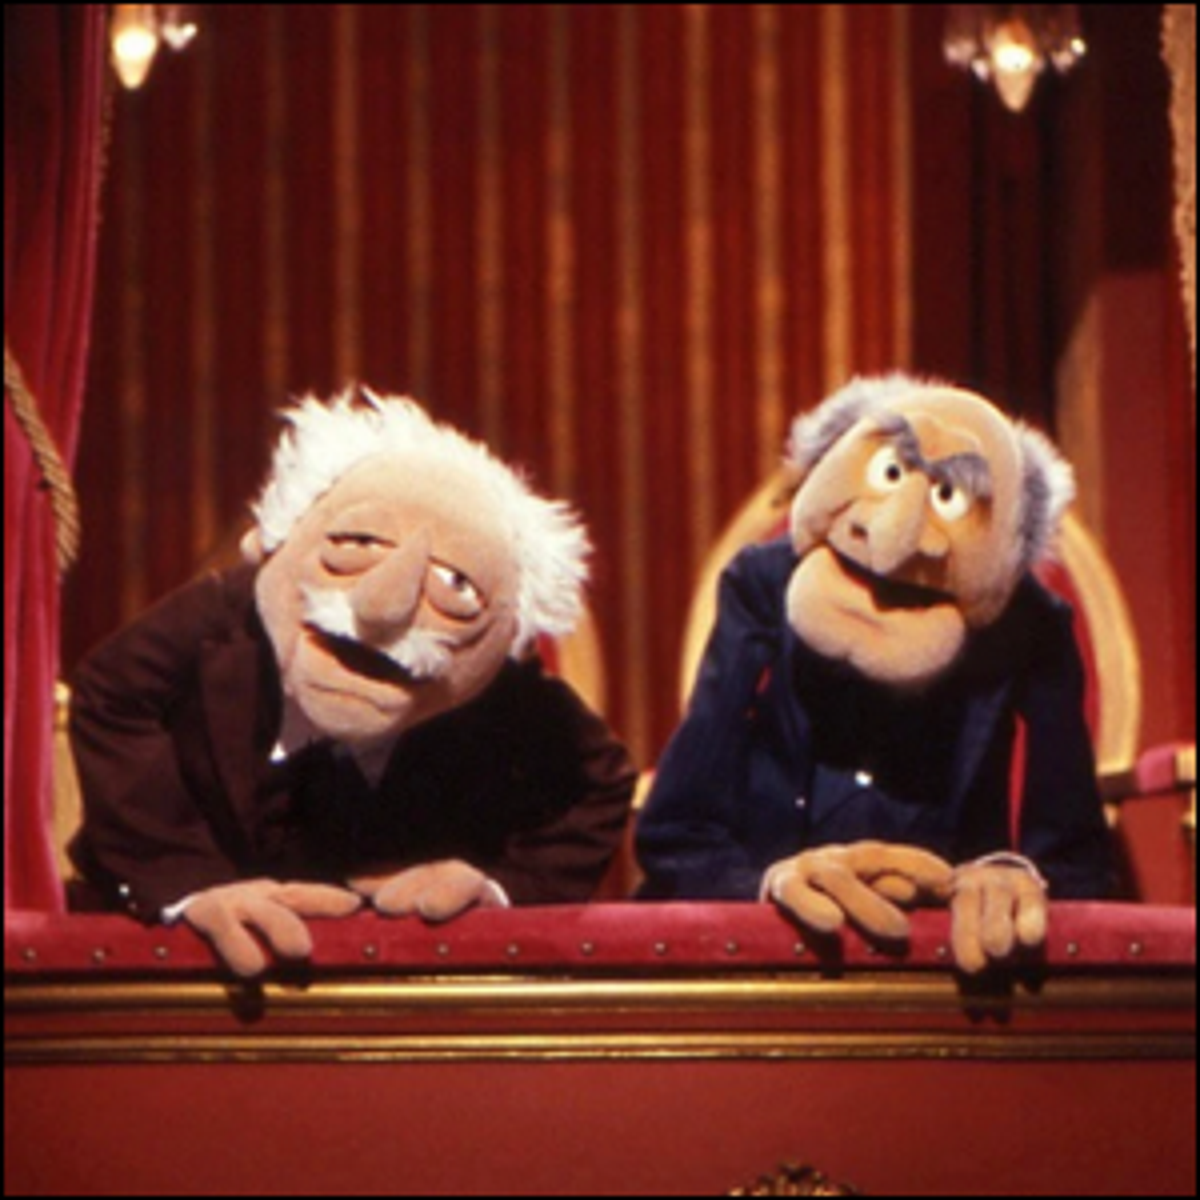 Statler and Waldorf in their balcony seats at the Muppet Theater.